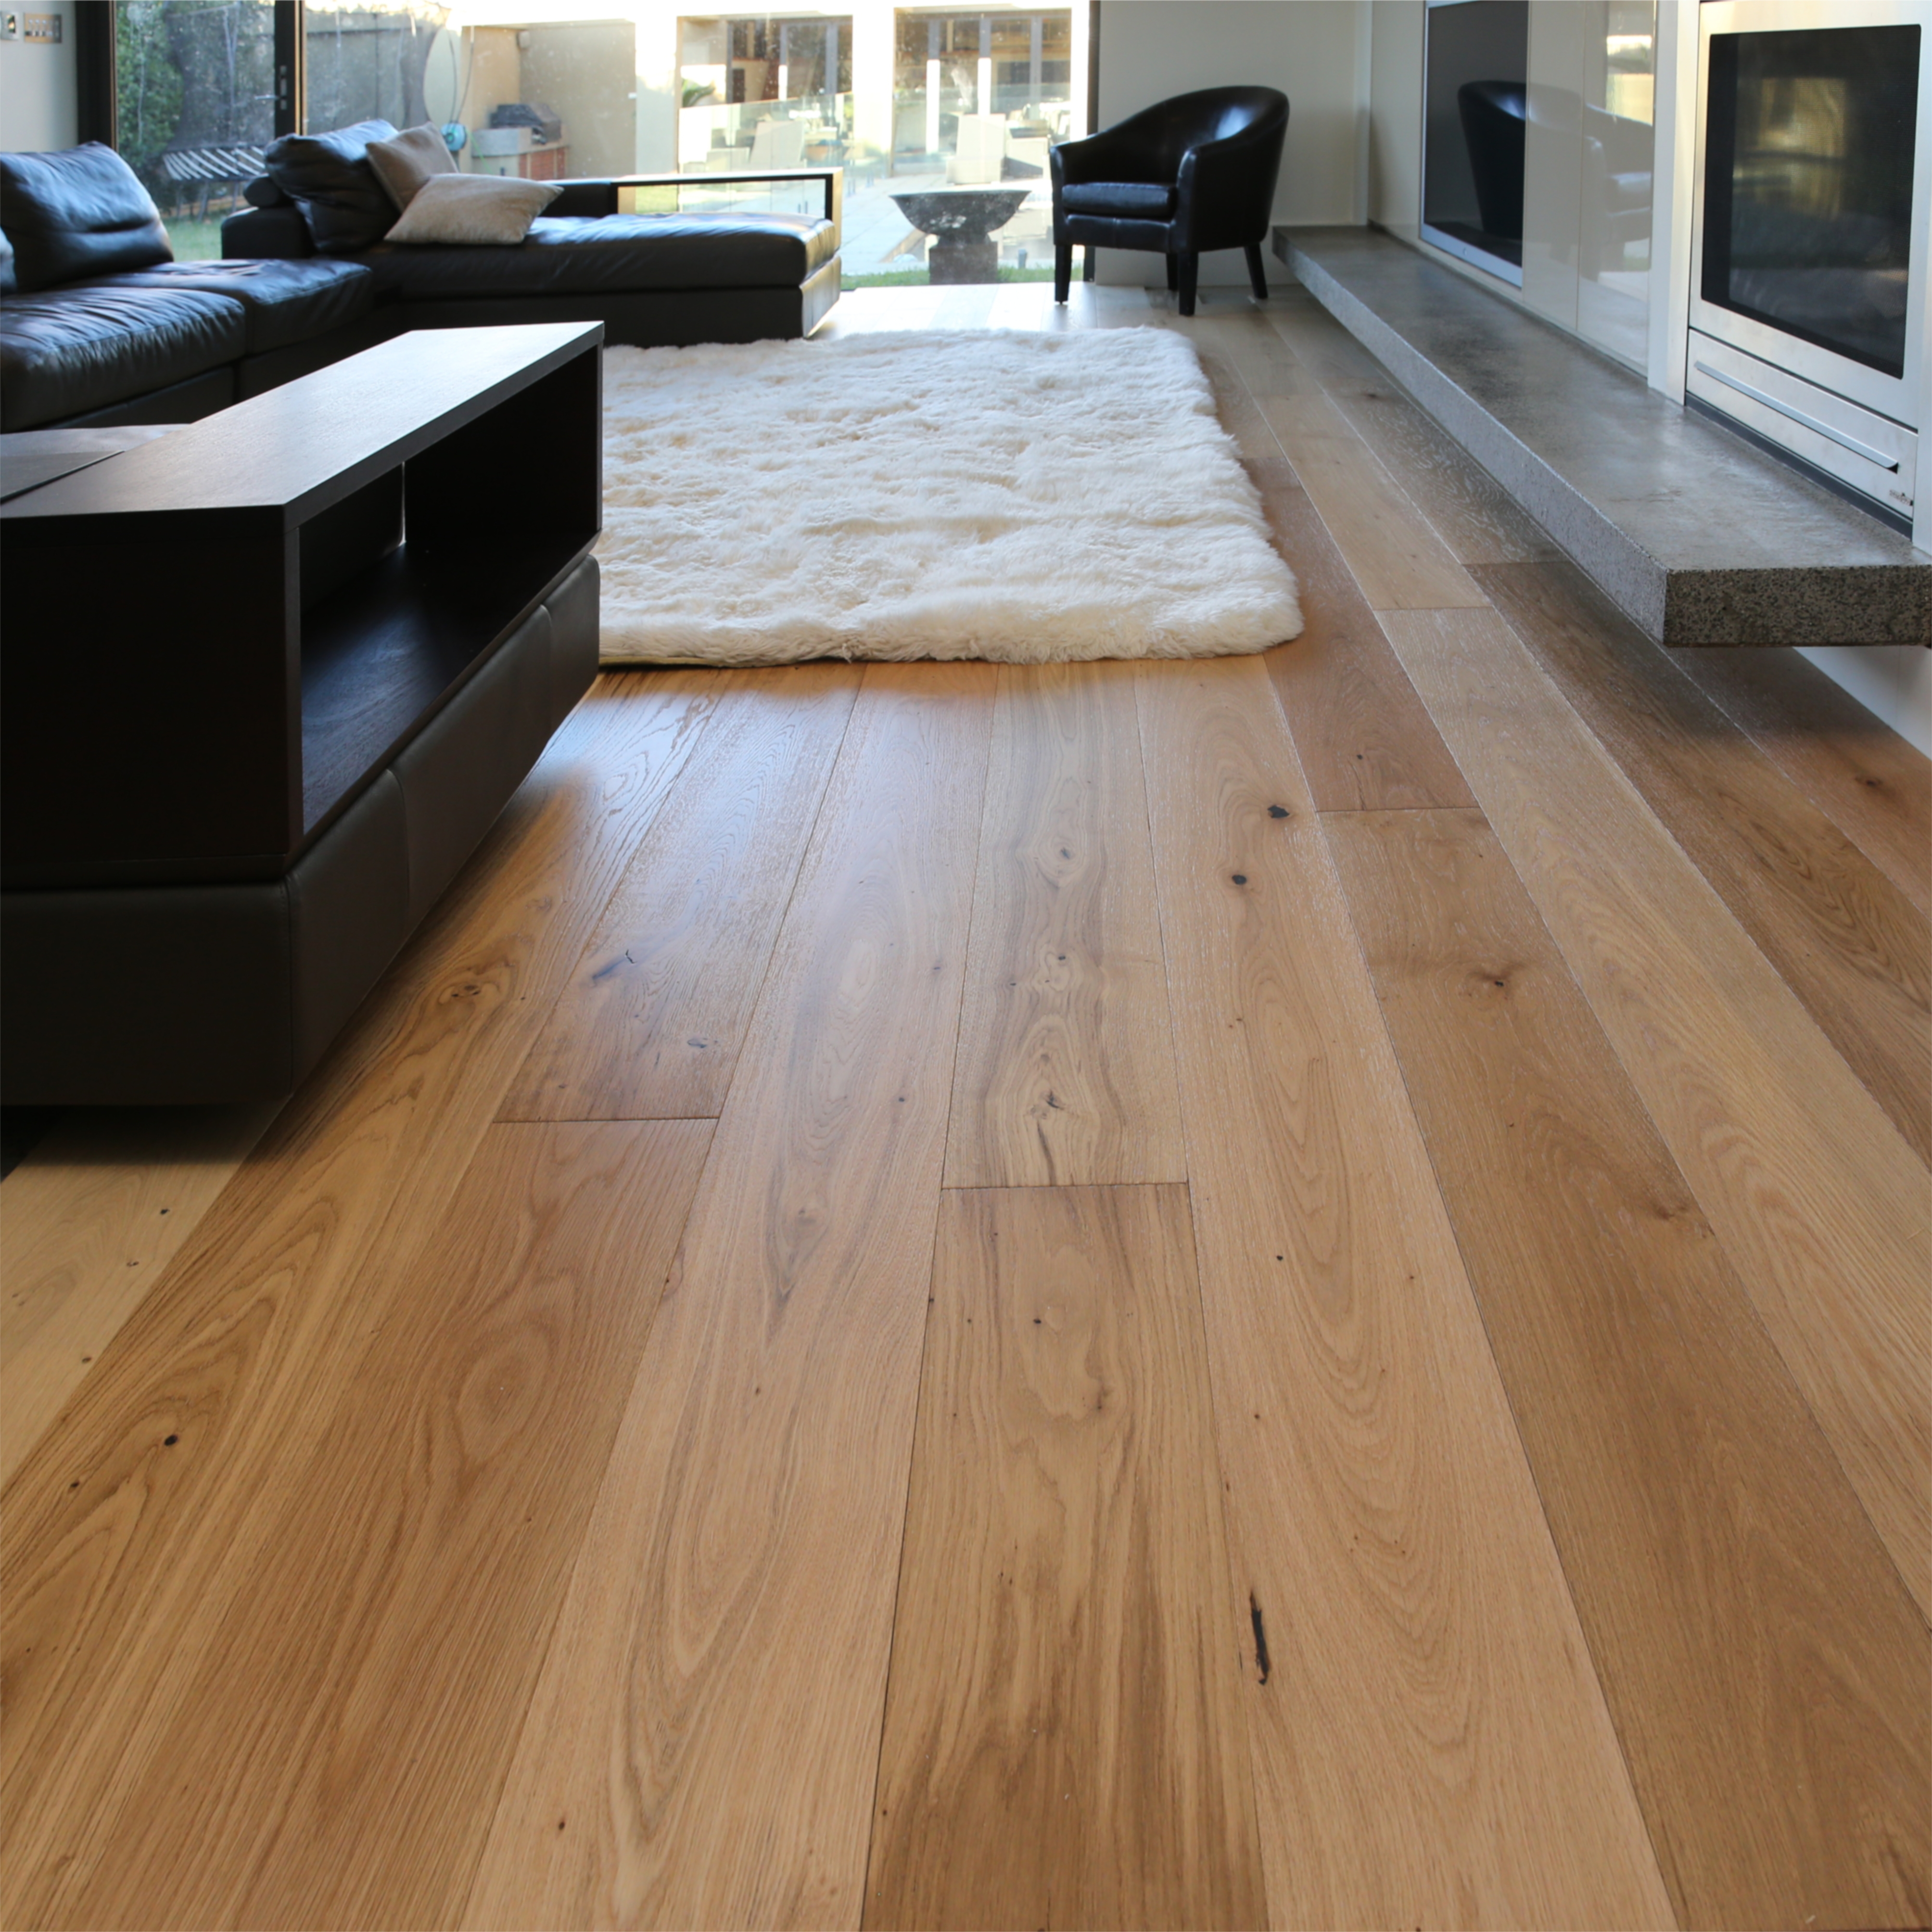 oak floorboards interior living space